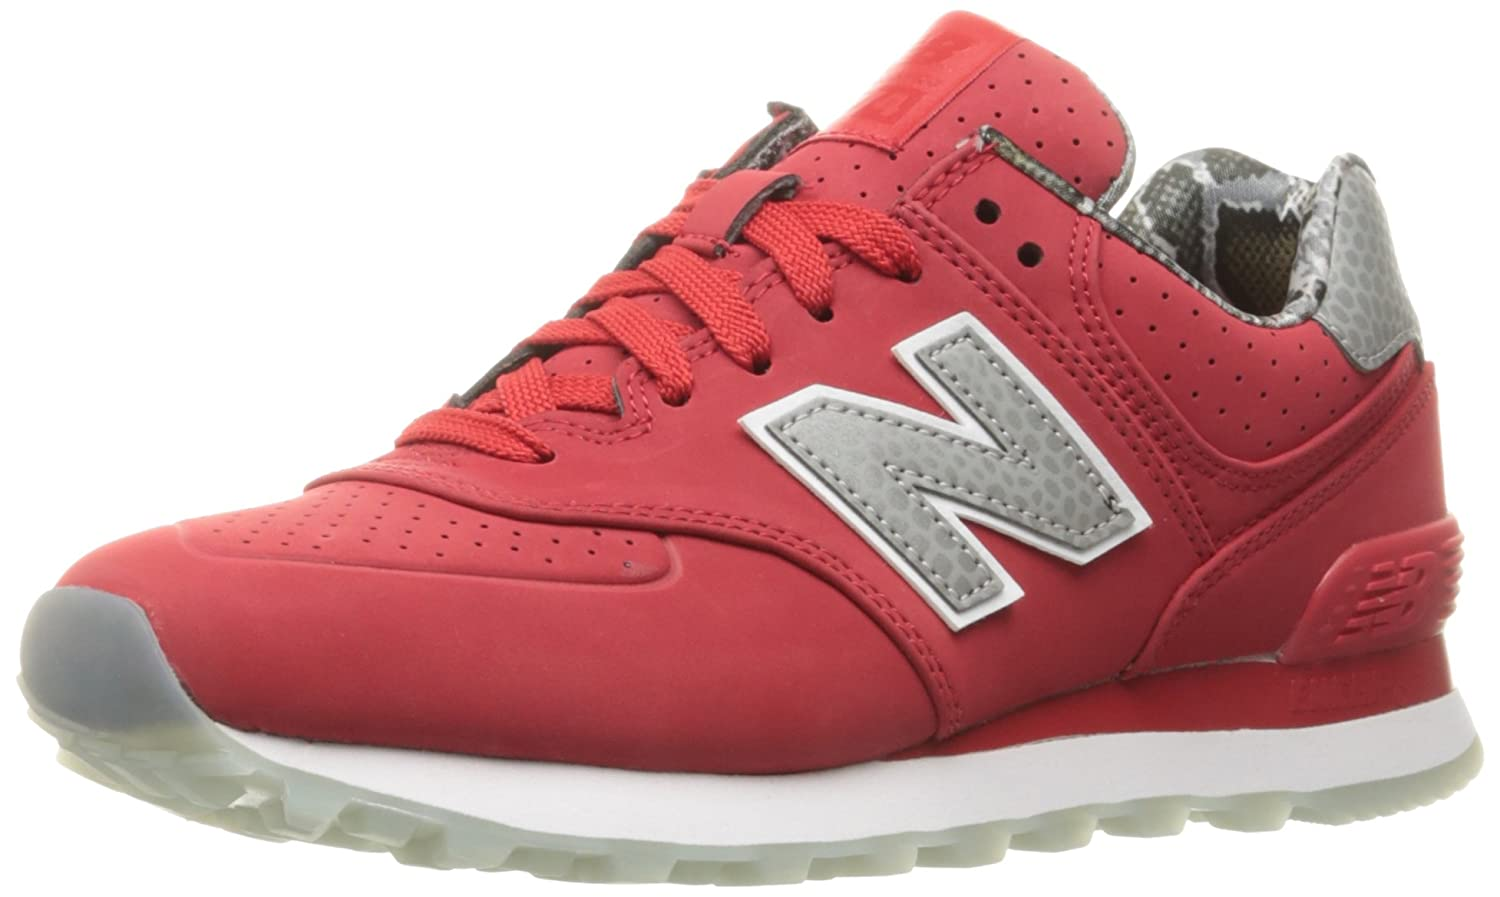 New Balance Women's WL574 Luxe Rep Sneaker B01FSIF5FS 12 B(M) US|Chinese Red/Chinese Red